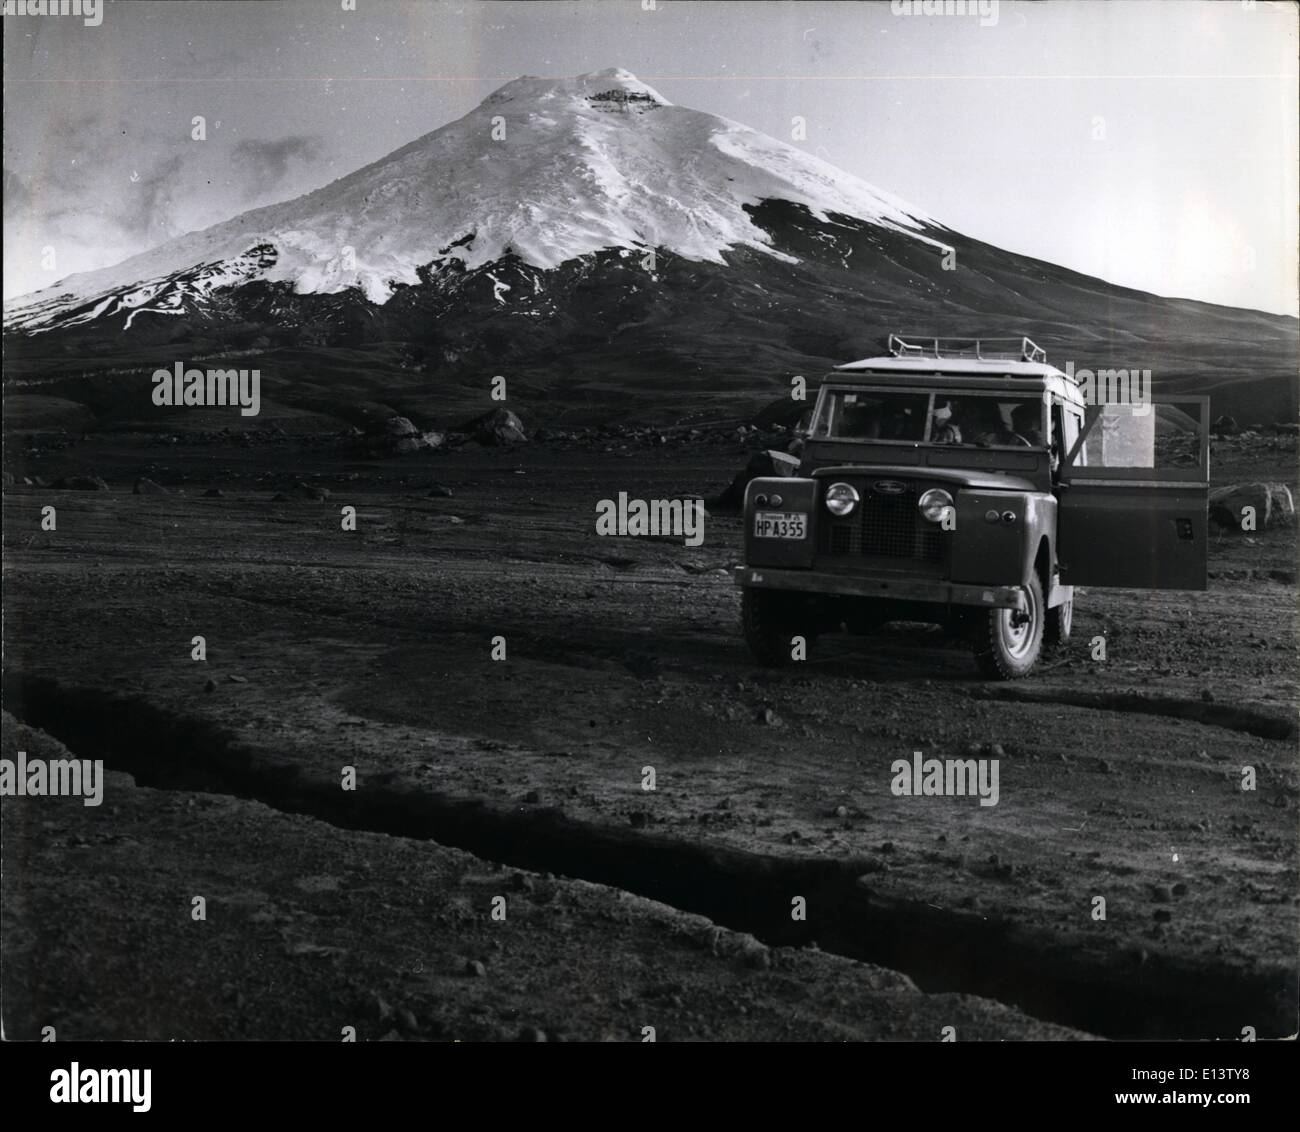 Mar. 27, 2012 - Cotopaxi appears in this picture with all its magnificence. It is possible to drive as far as the beginning of the snos. Many people, especially trout fishermen visit this place since they can find a lot of trouts in the rivers which come from the thaws. - Stock Image